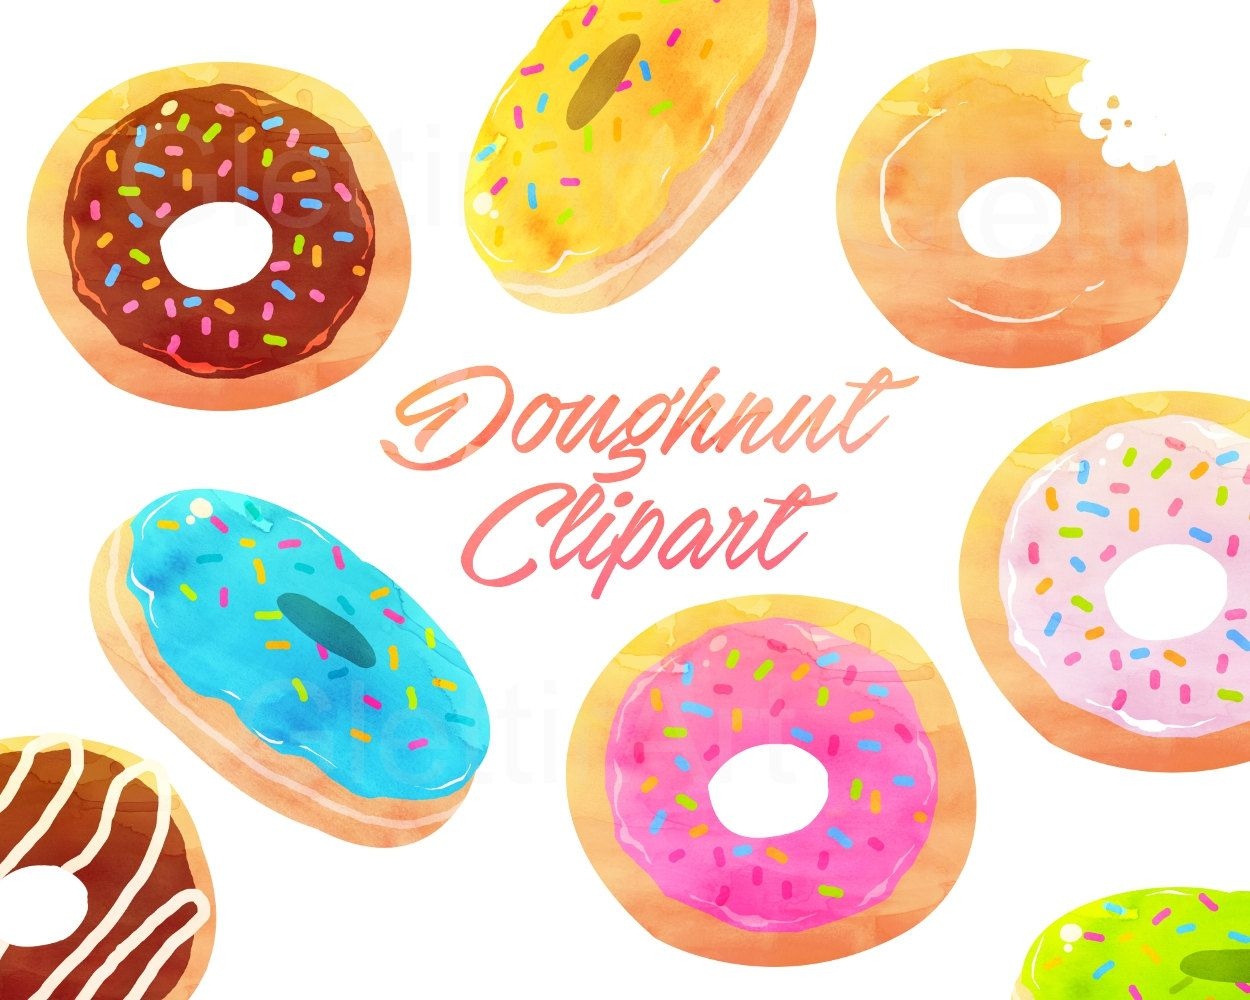 hight resolution of donut clipart doughnut clipart dessert clipart for personal and commercial use instant download scrapbooking planner stickers by glettirart on etsy